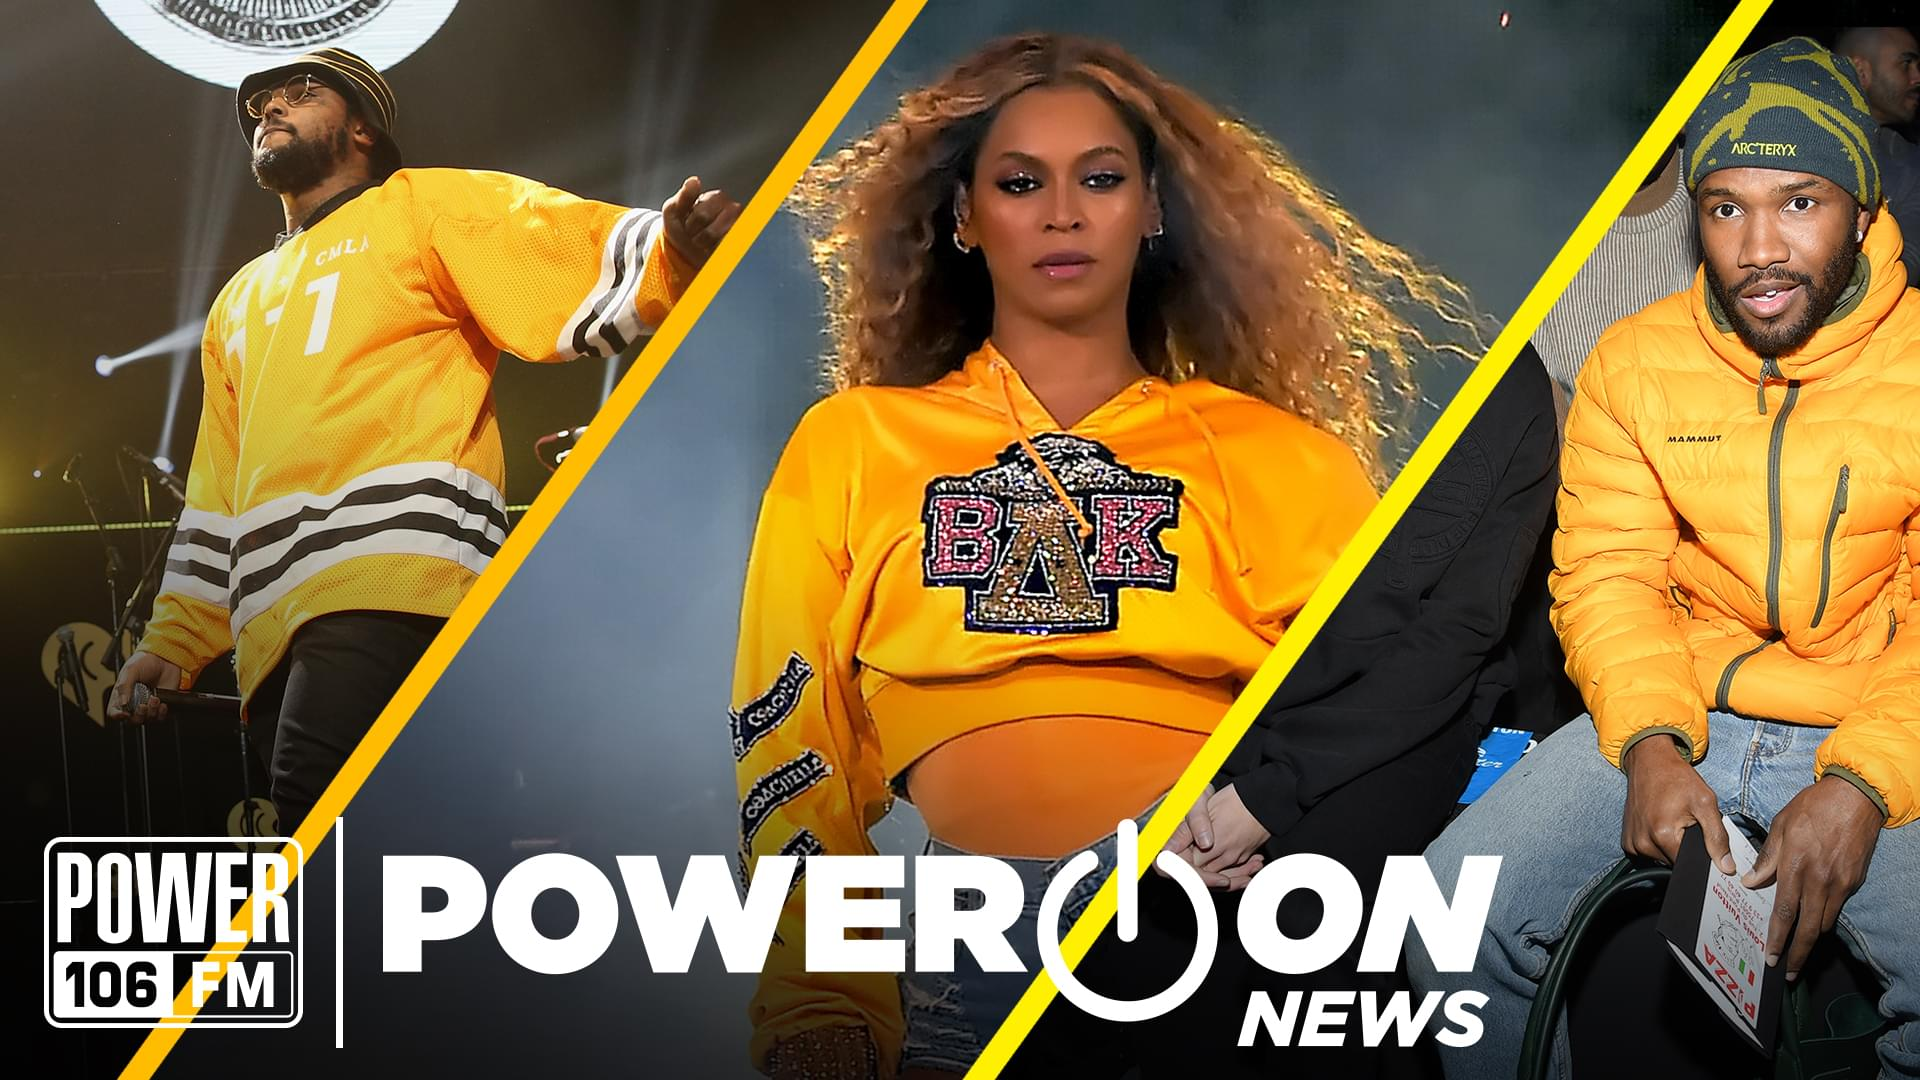 #PowerOn: Beyoncé Drops 'Homecoming' Documentary + ScHoolboy Q Teases New Album 'CrasH Talk'